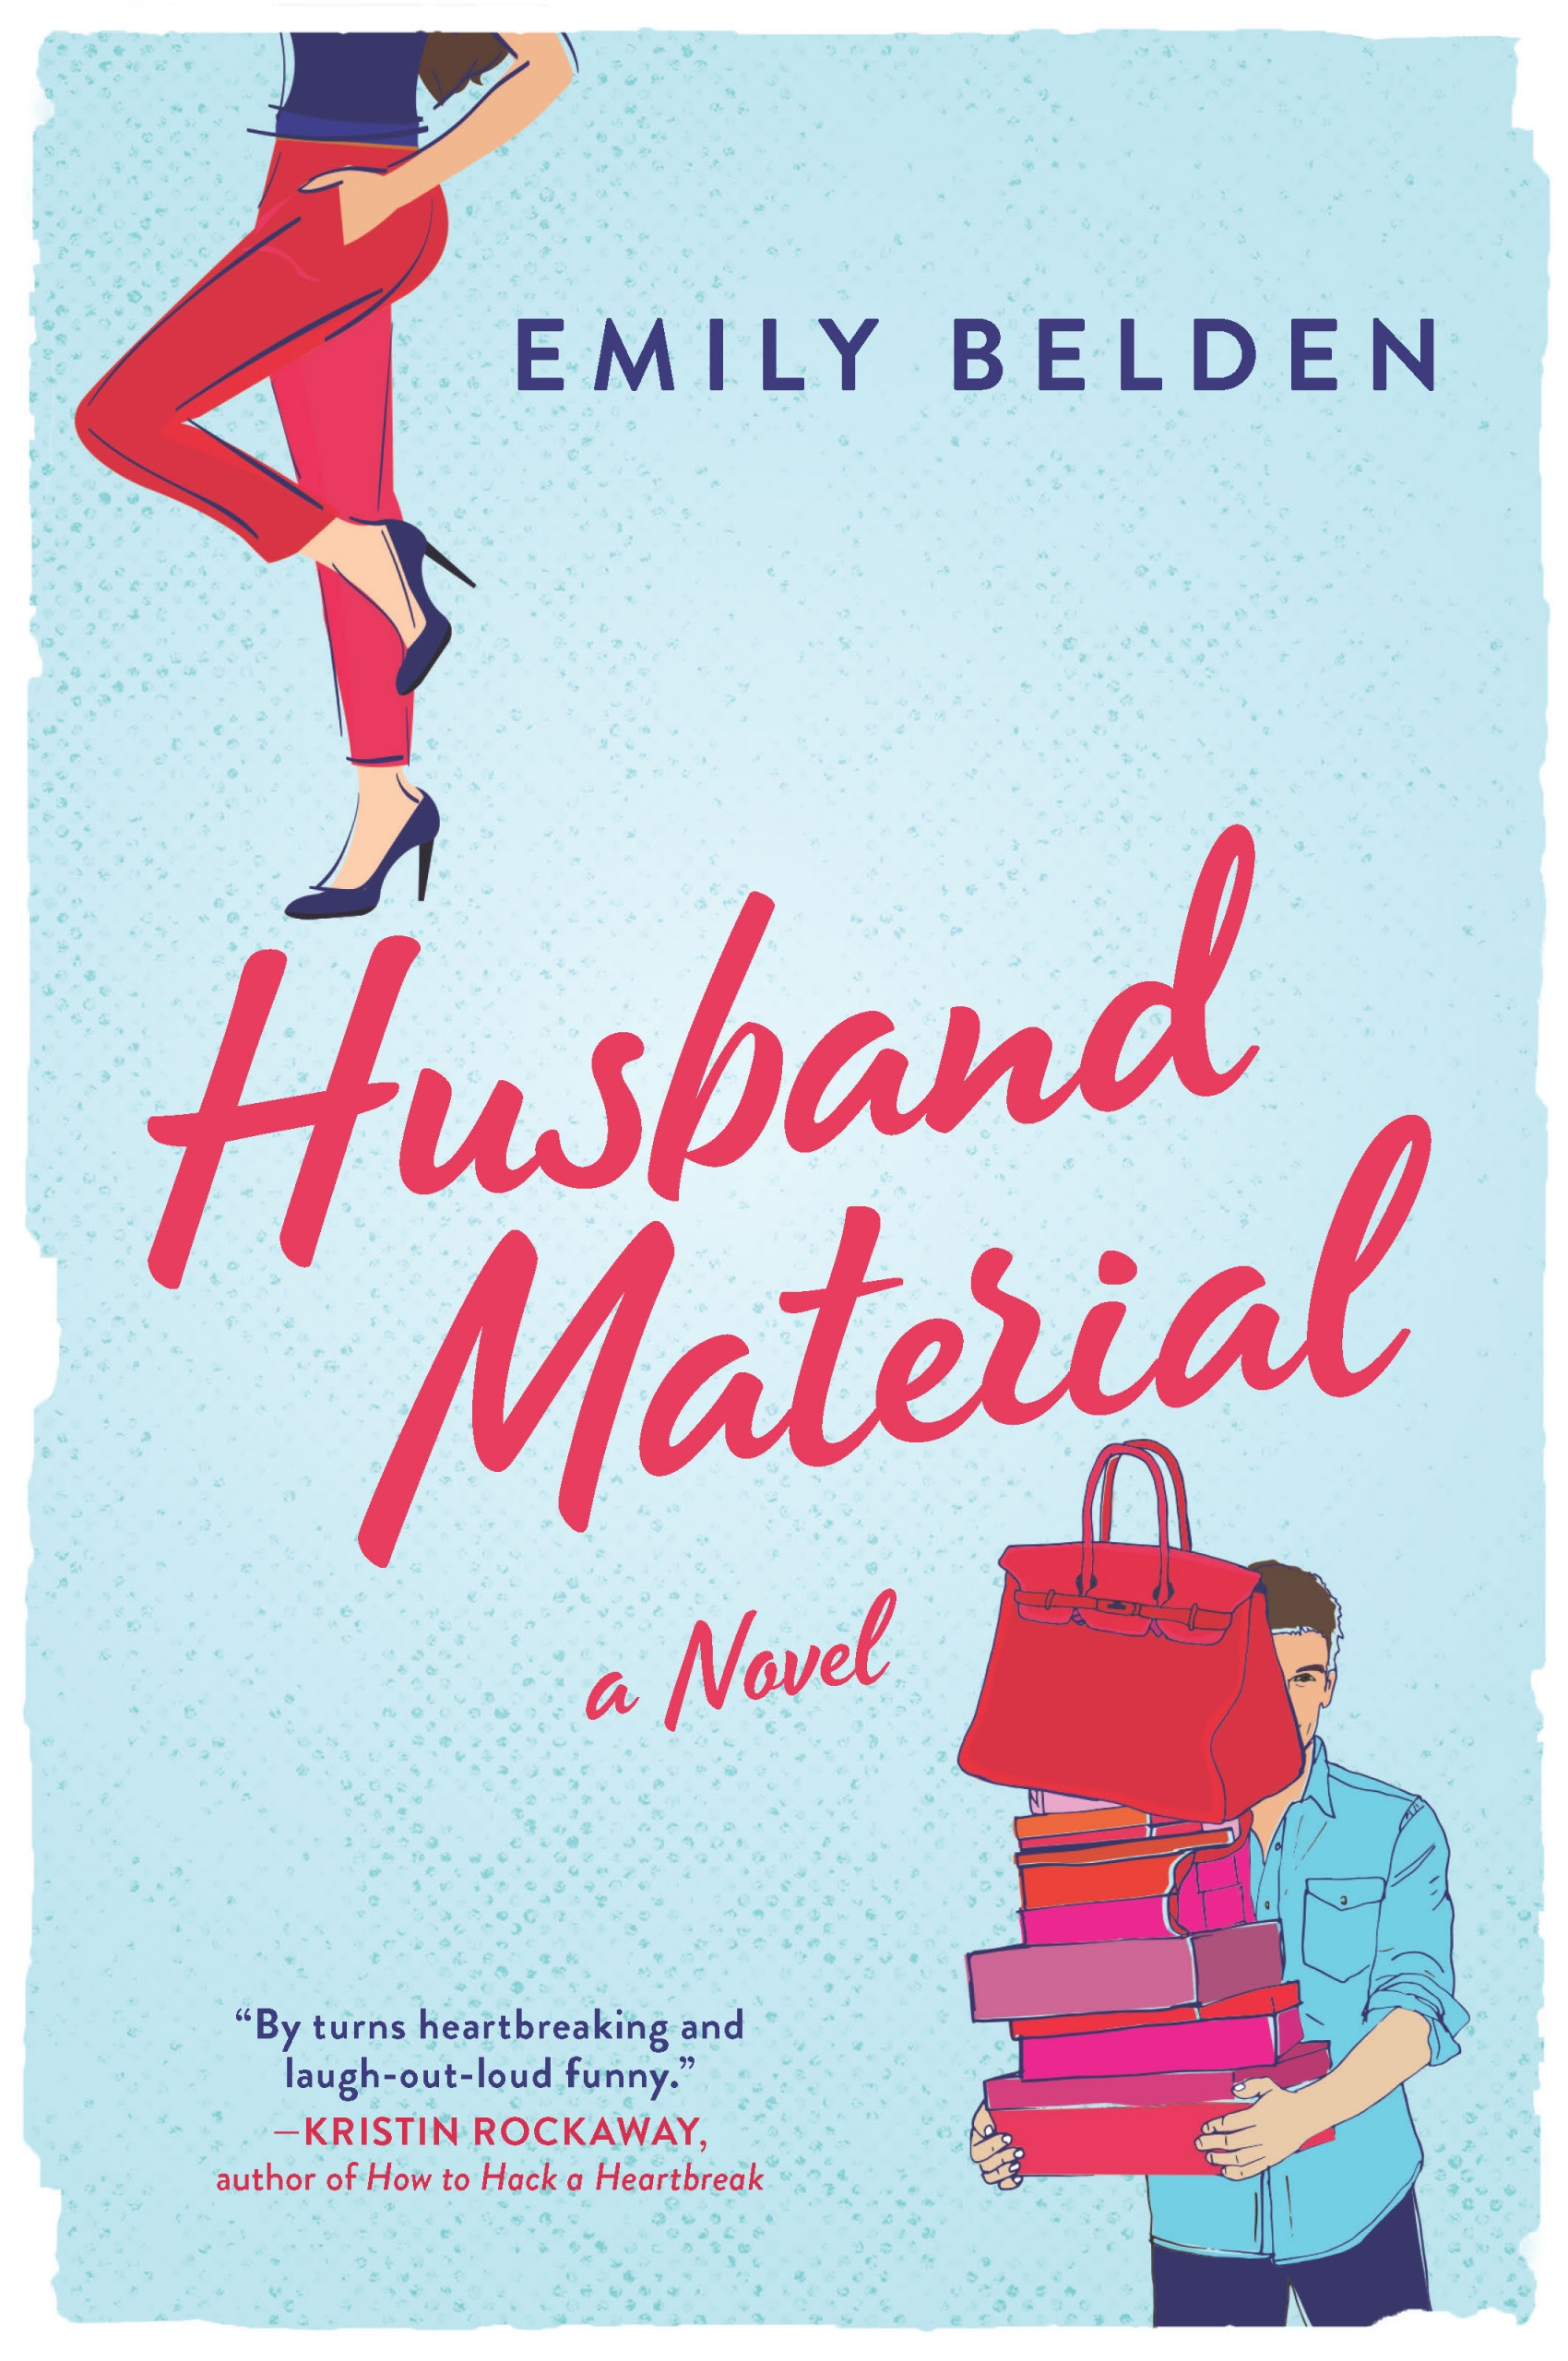 Husband Material by Emily Belden